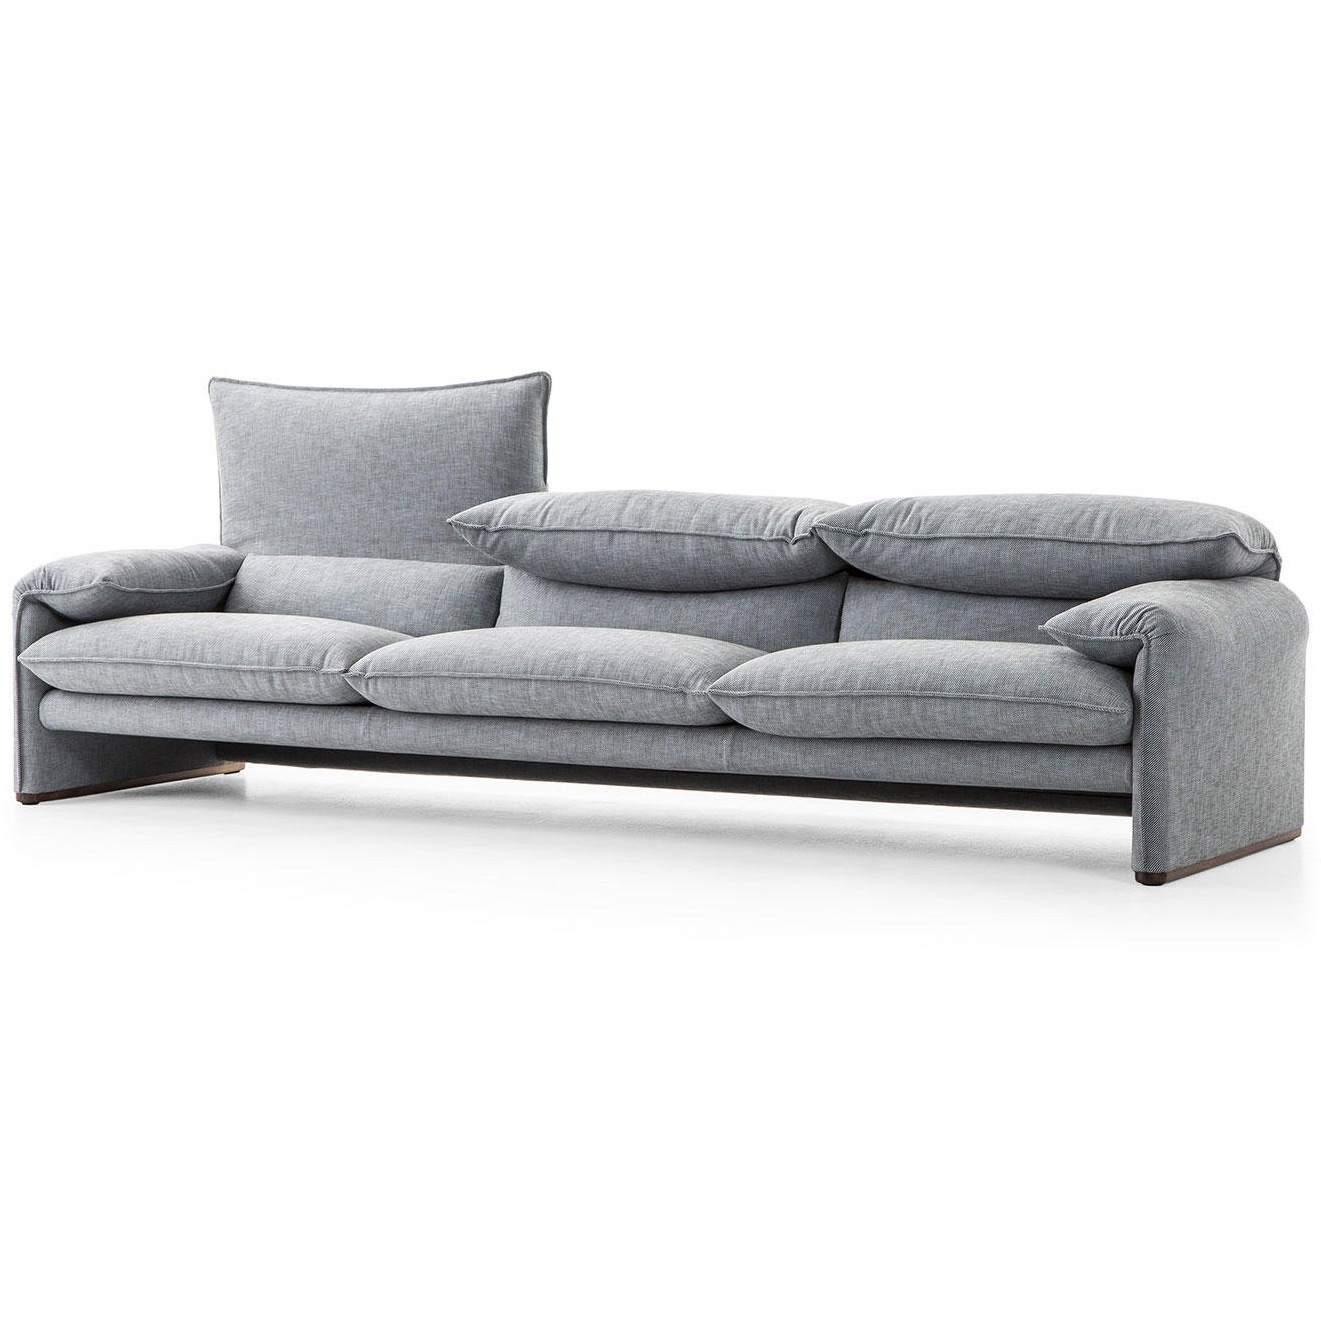 Maxi Sessel Sofa Maralunga 40 Maxi By Cassina